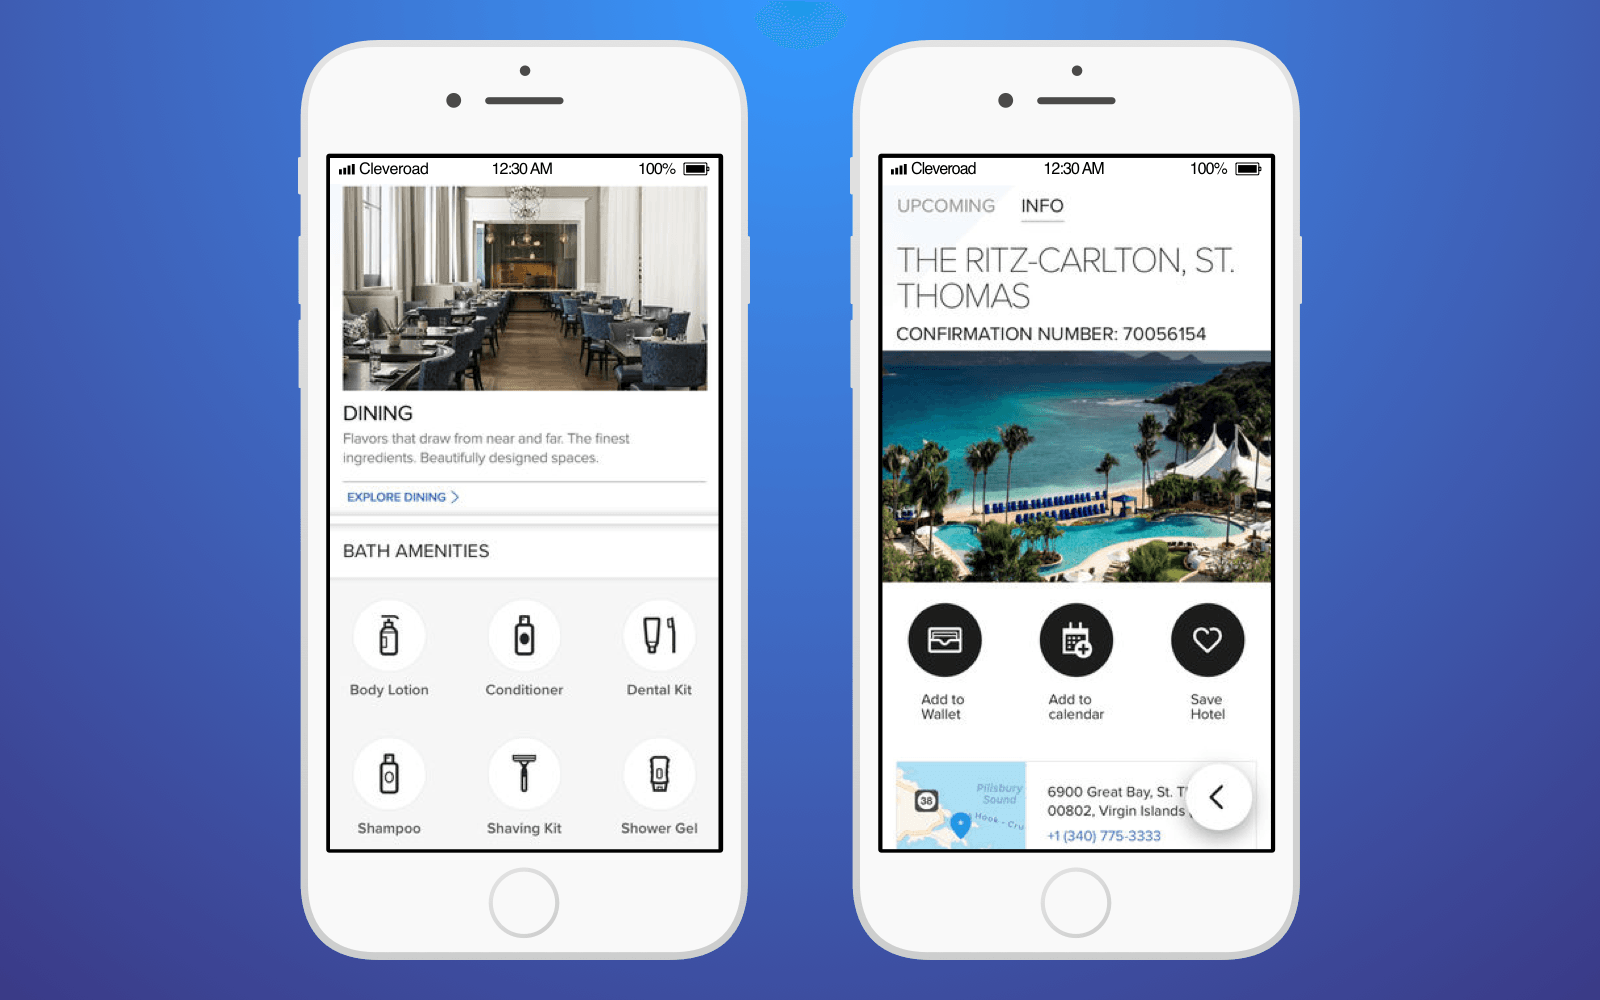 Hotel innovation: Ritz-Carlton Hotels app